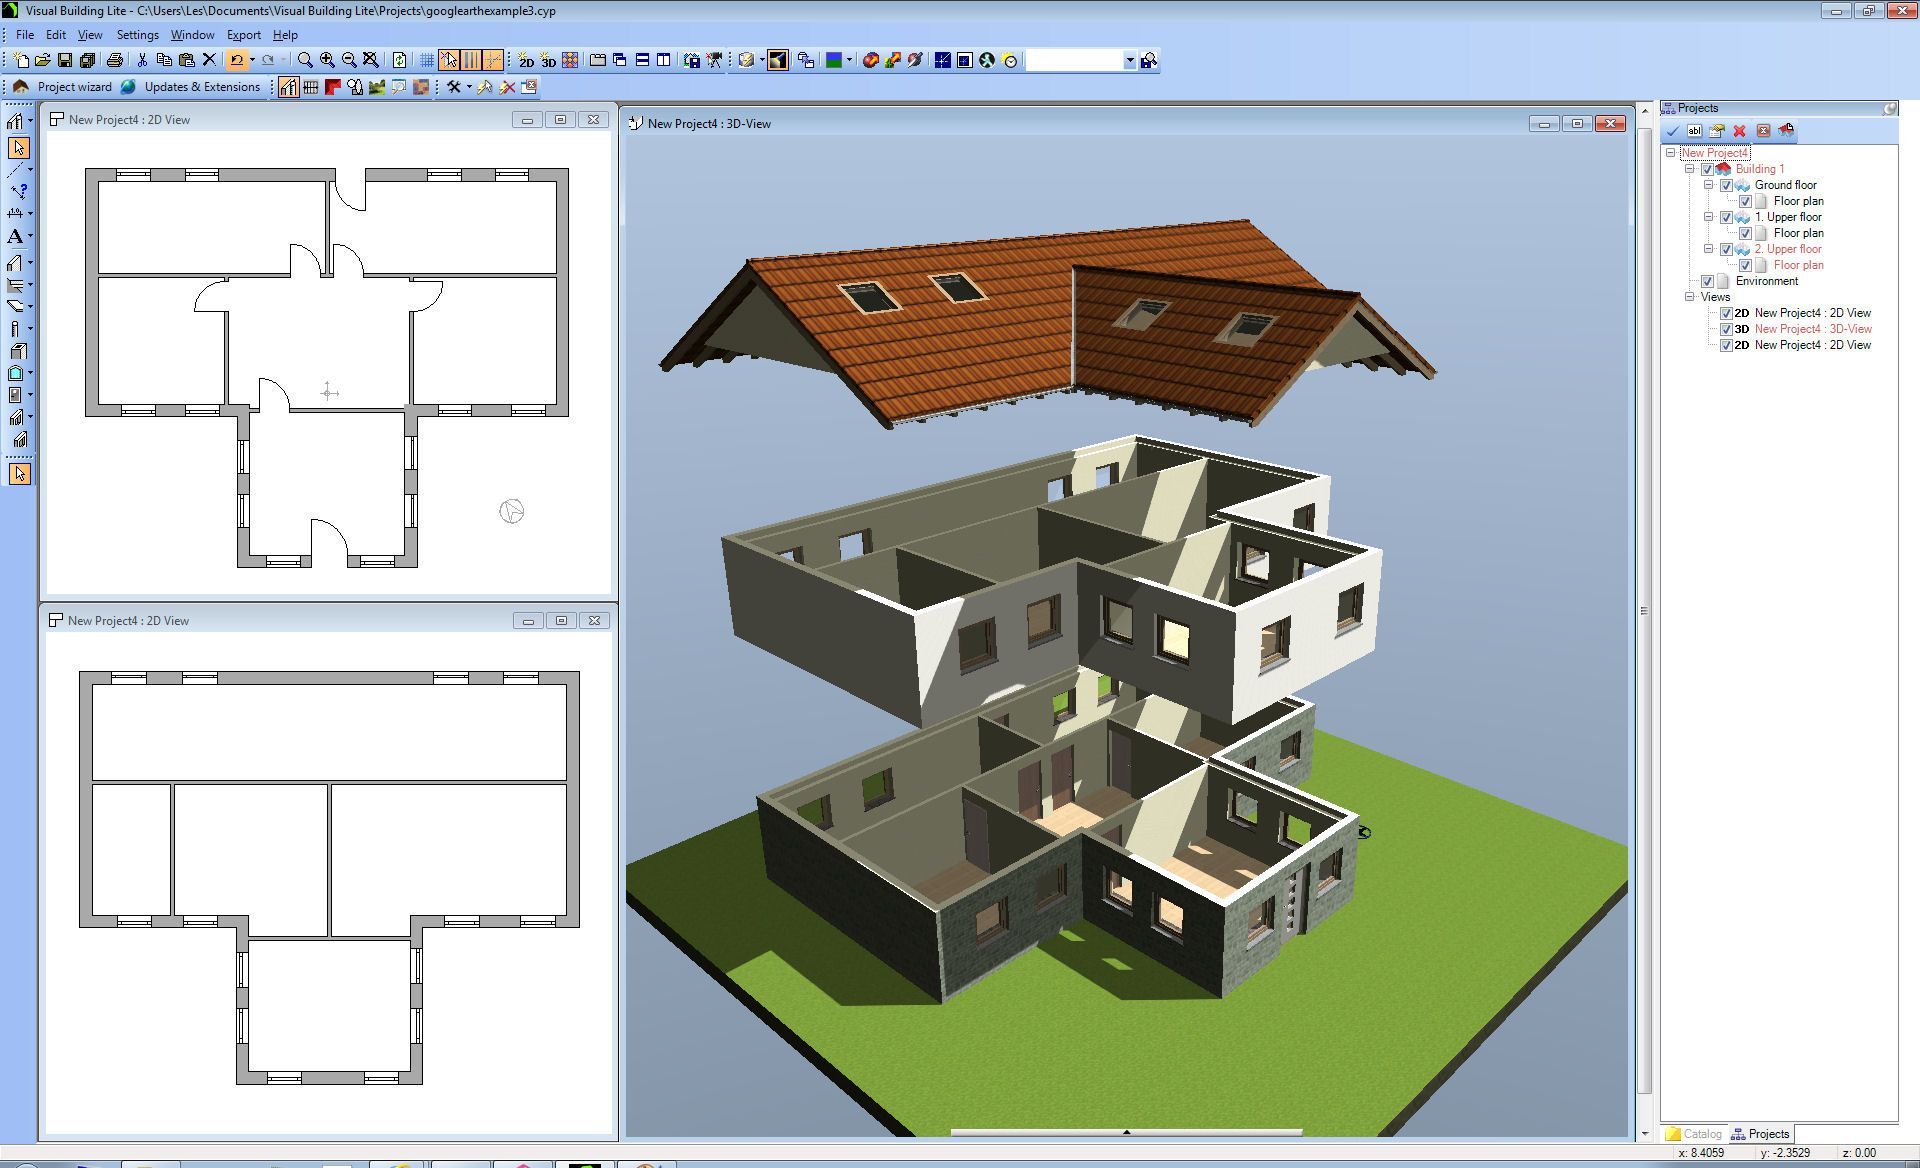 Perfect Best Free Software For Drawing Floor Plans And Description Home Design Software Free Home Design Software Floor Plan Design